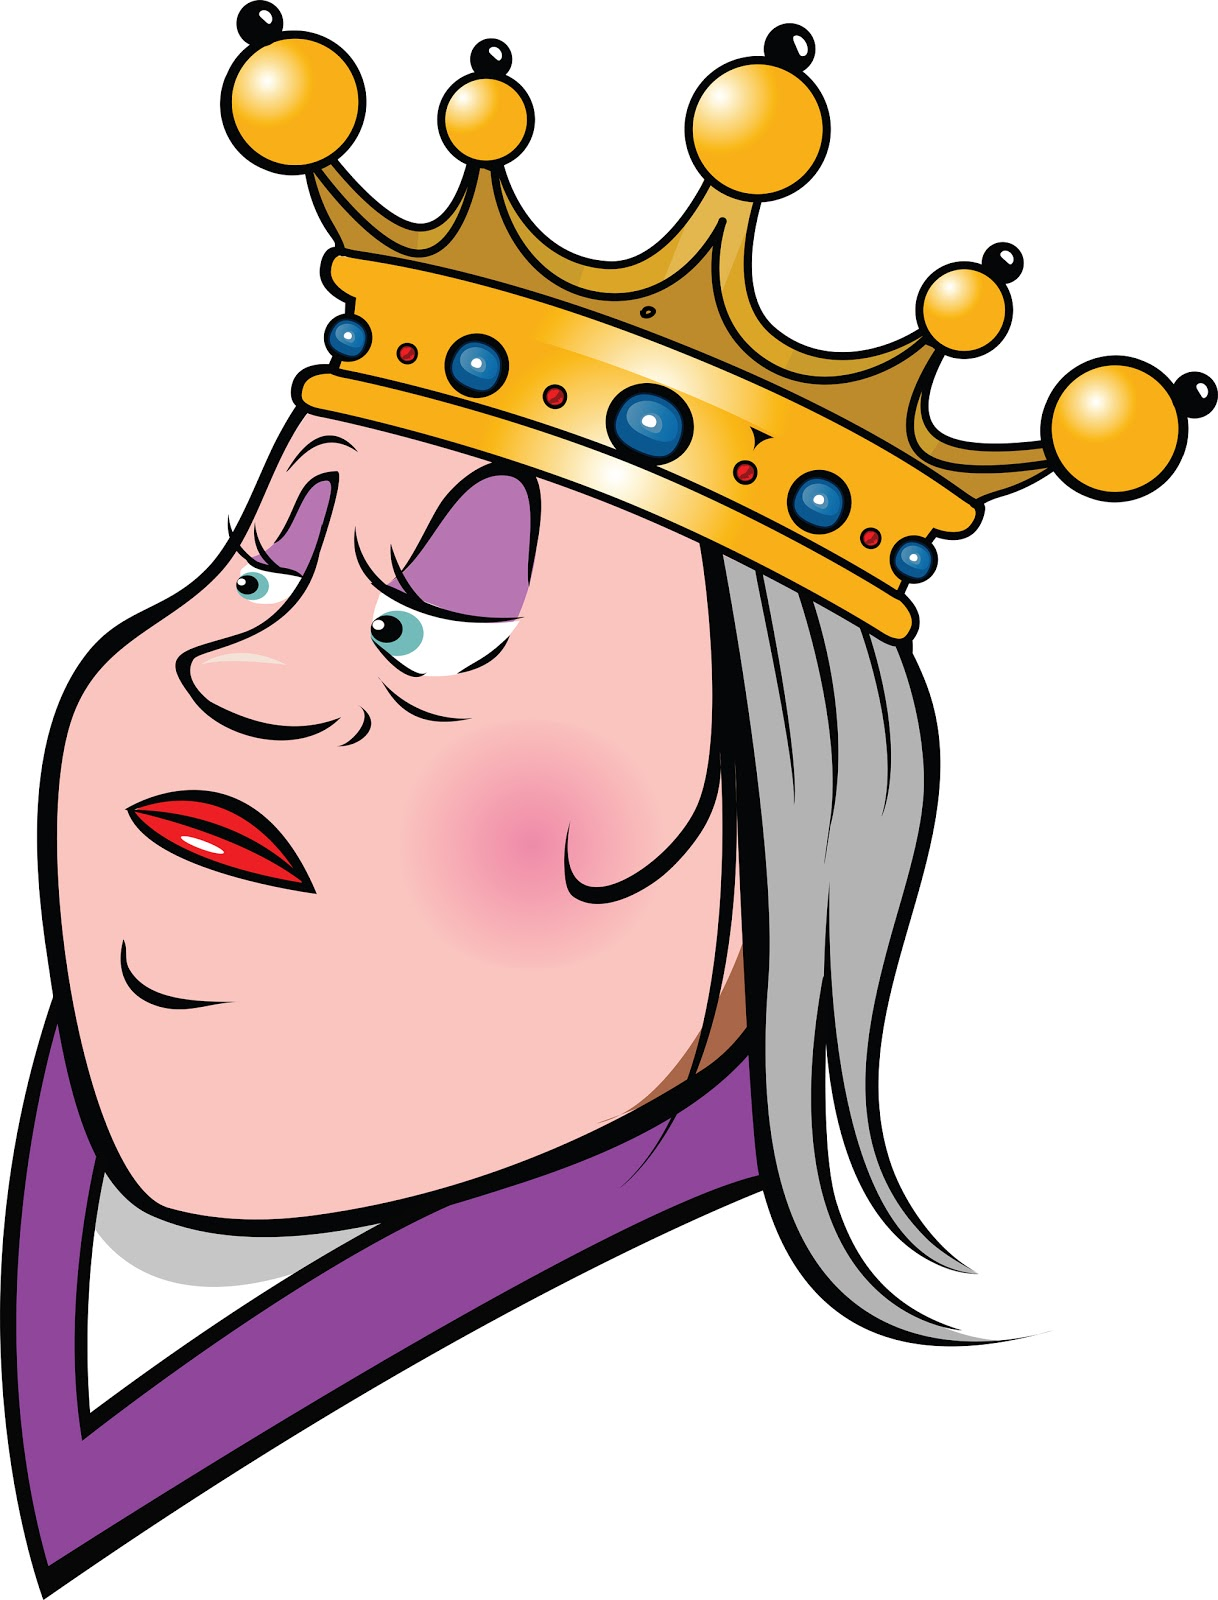 Queen Clipart HR BlogVOCATE: Novembe...